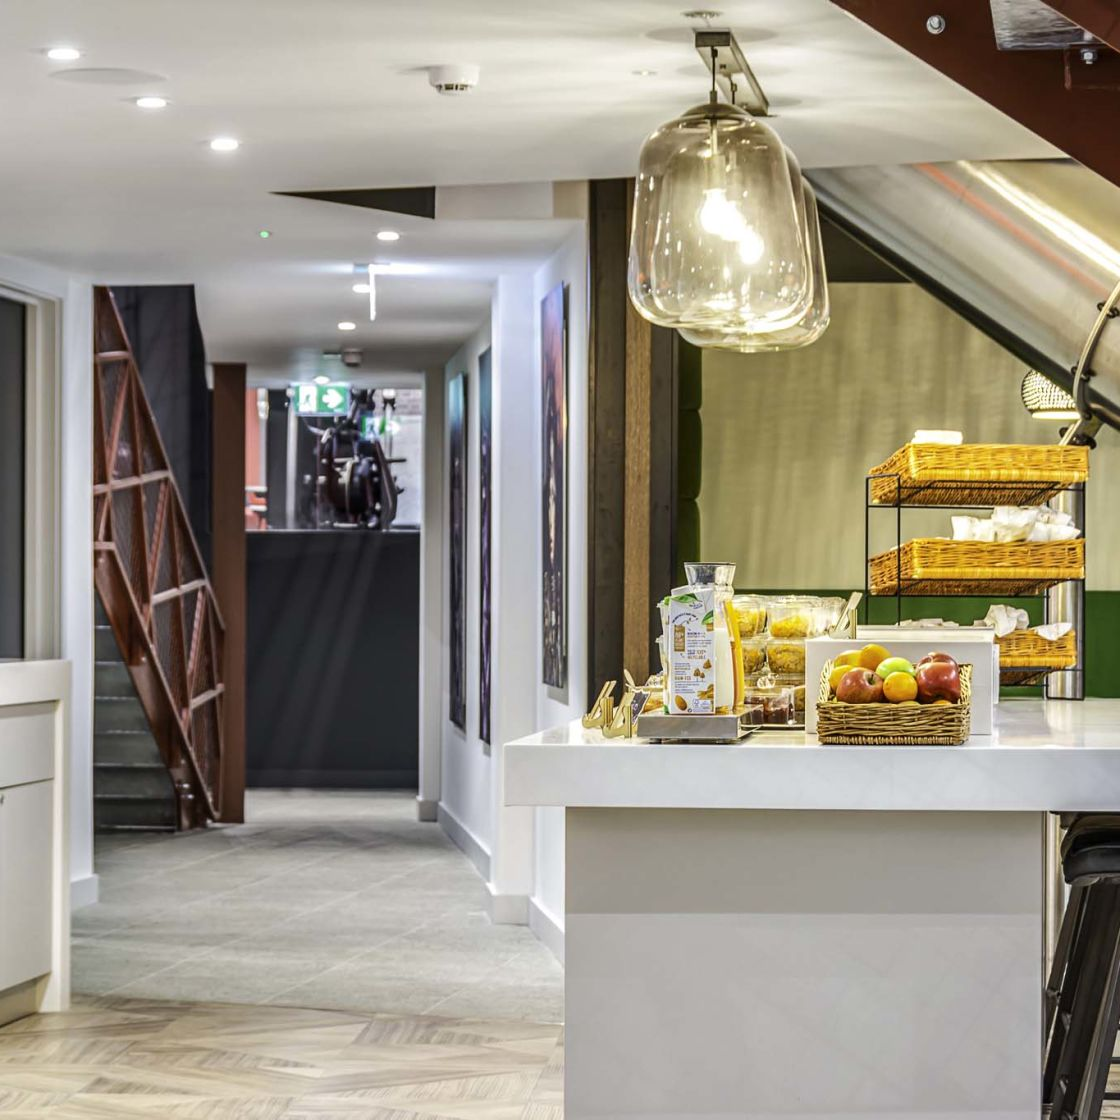 Complimentary breakfast at IconInc Gravity, student accommodation in Lincoln